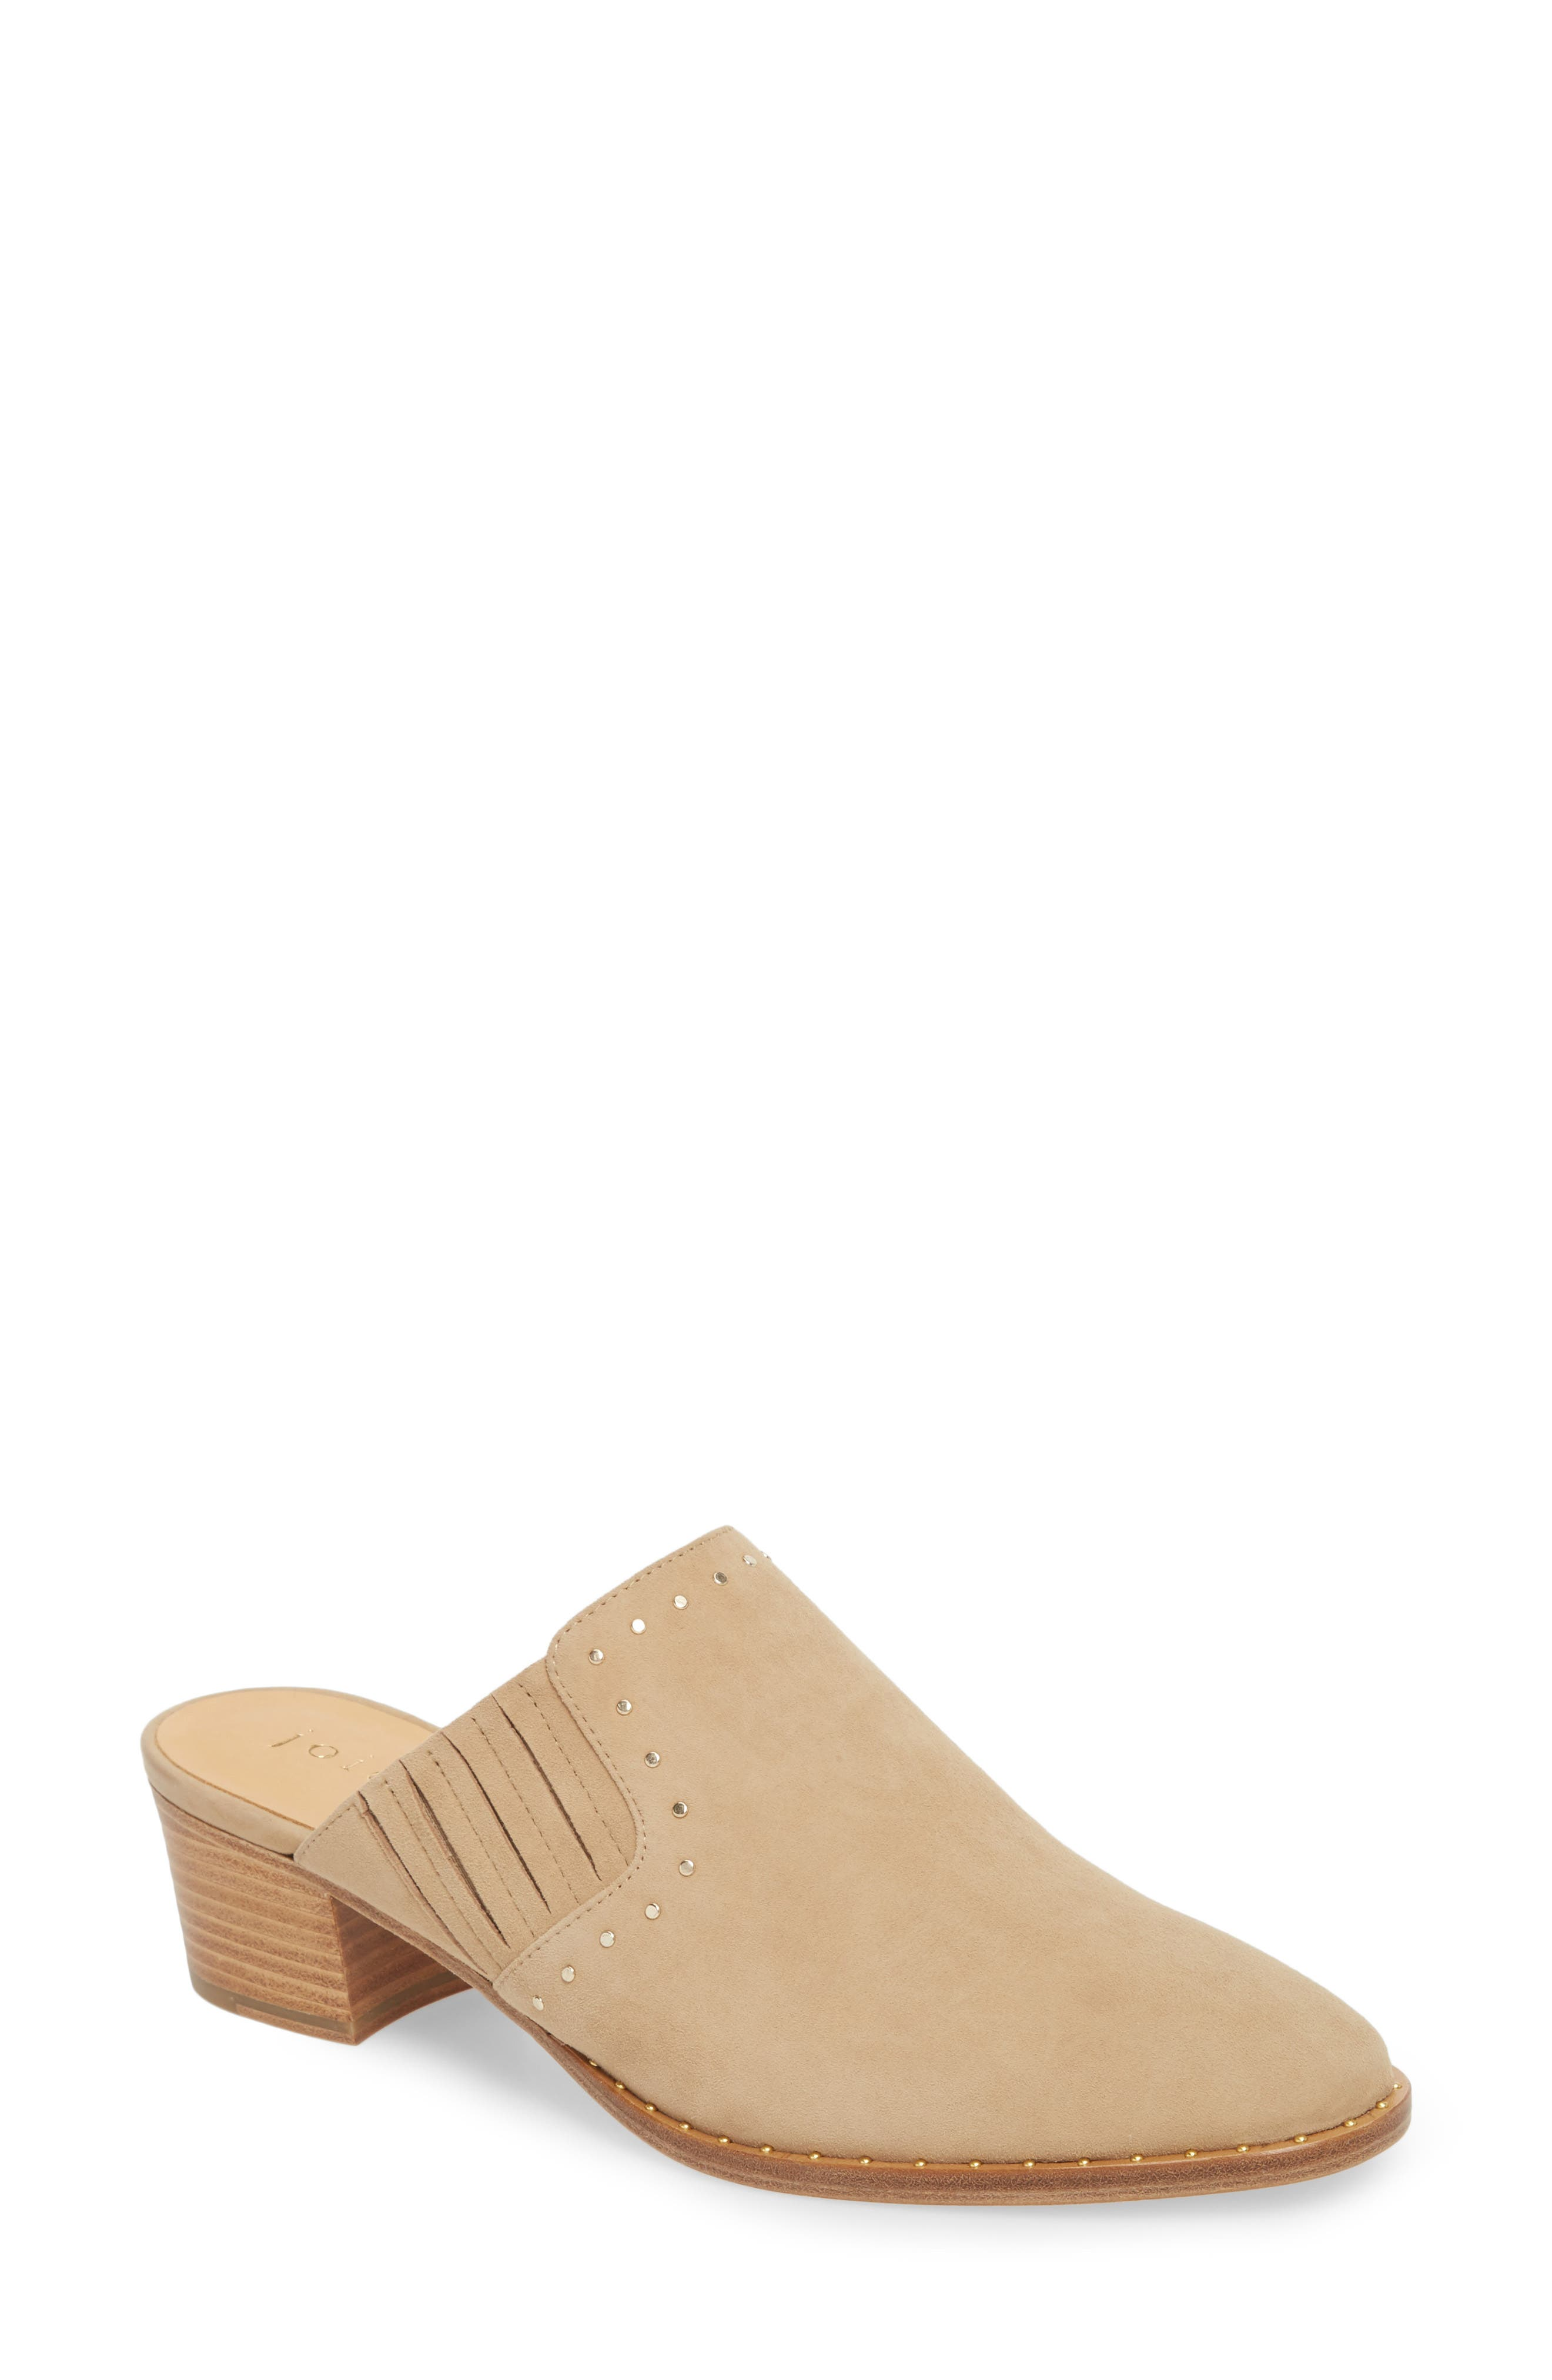 Fayla Studded Mule,                         Main,                         color, SAND